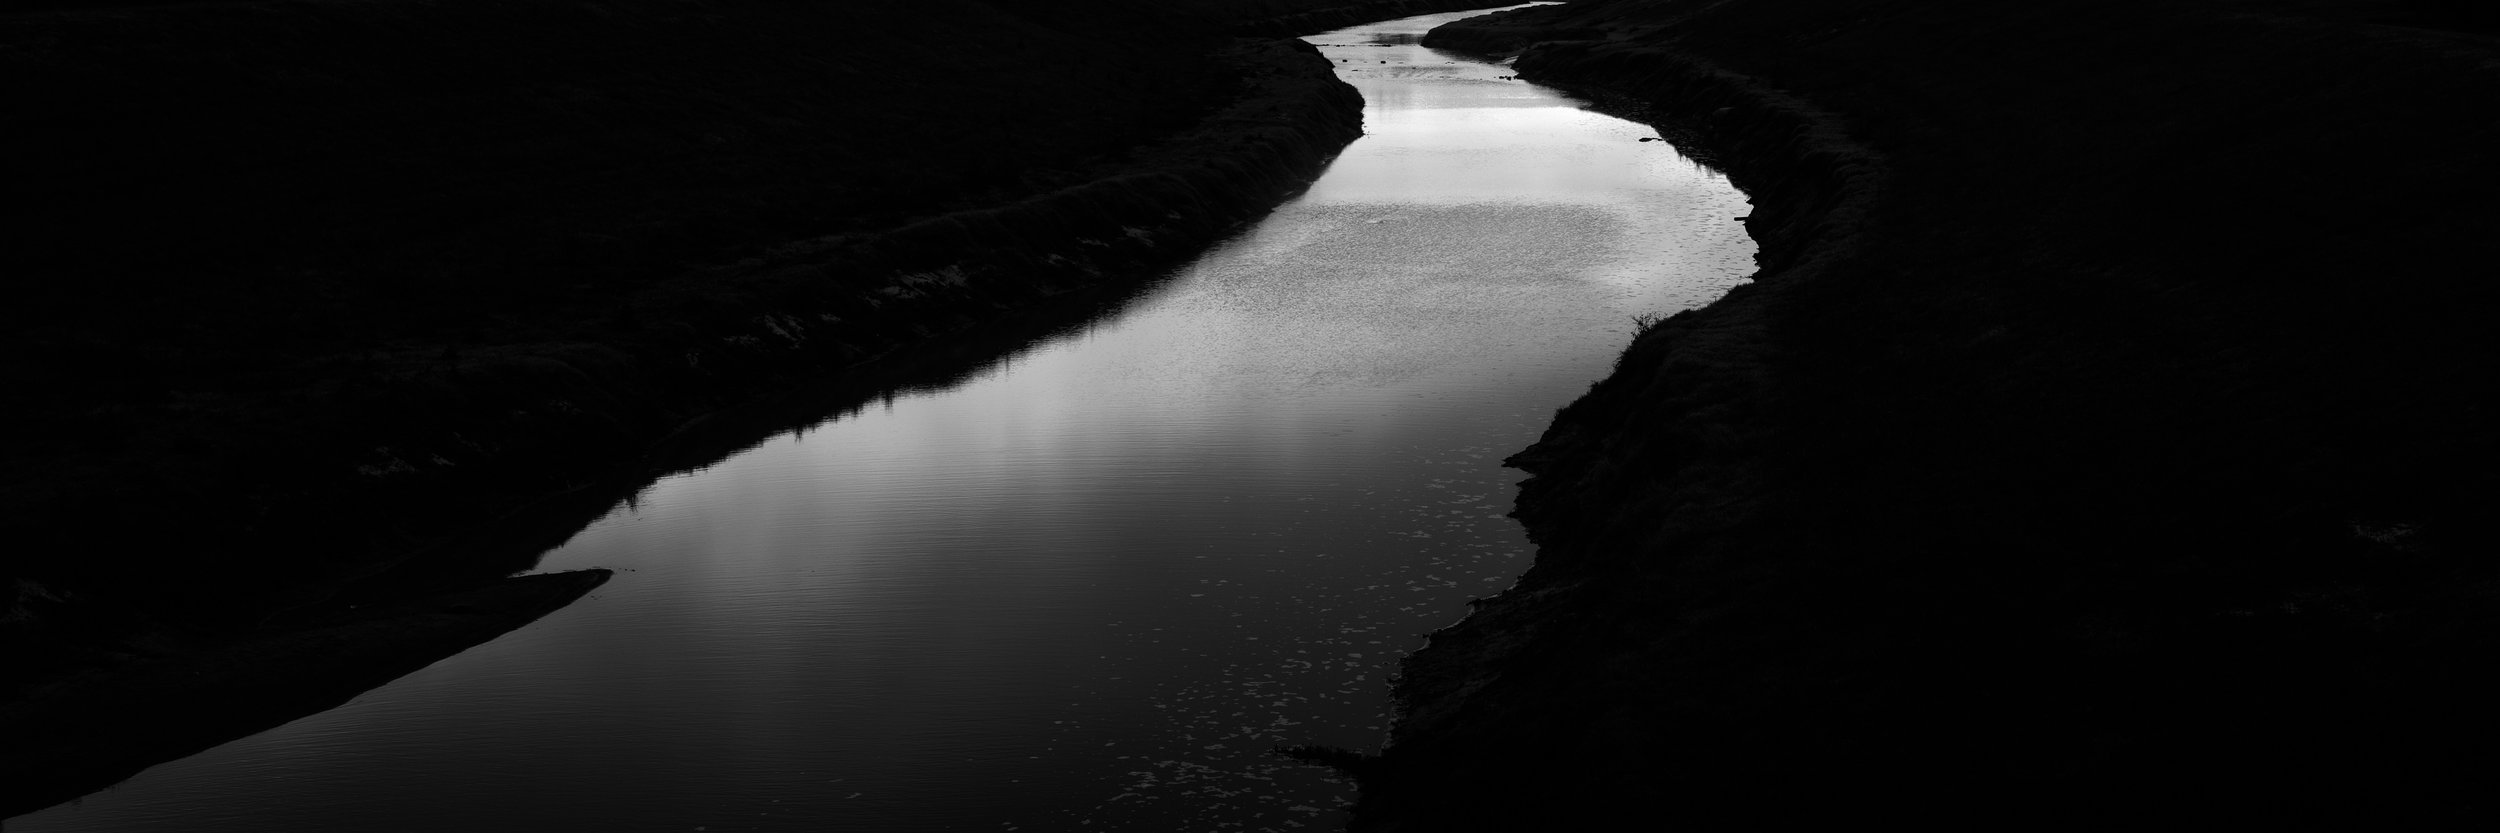 panoramas - Black and white abstract landscapes